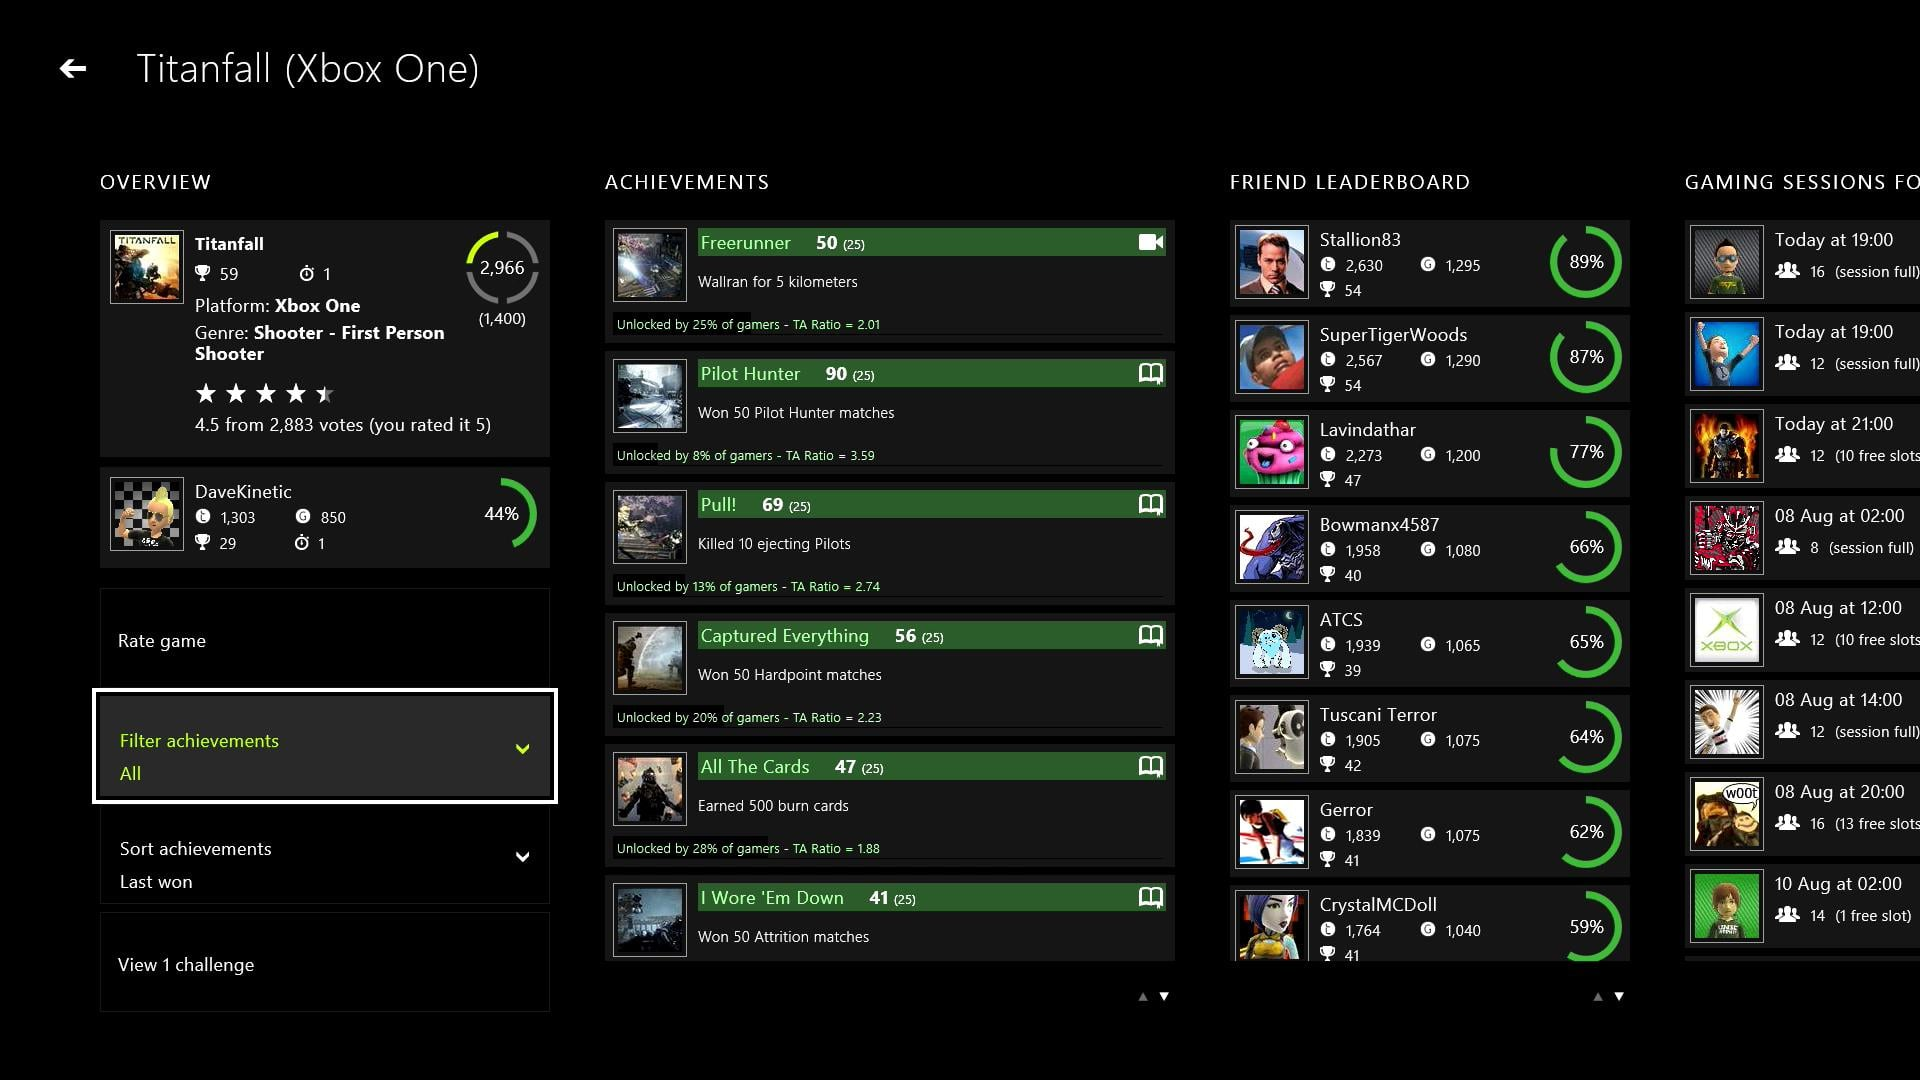 Game pages indicate which achievements have solutions, upcoming sessions etc